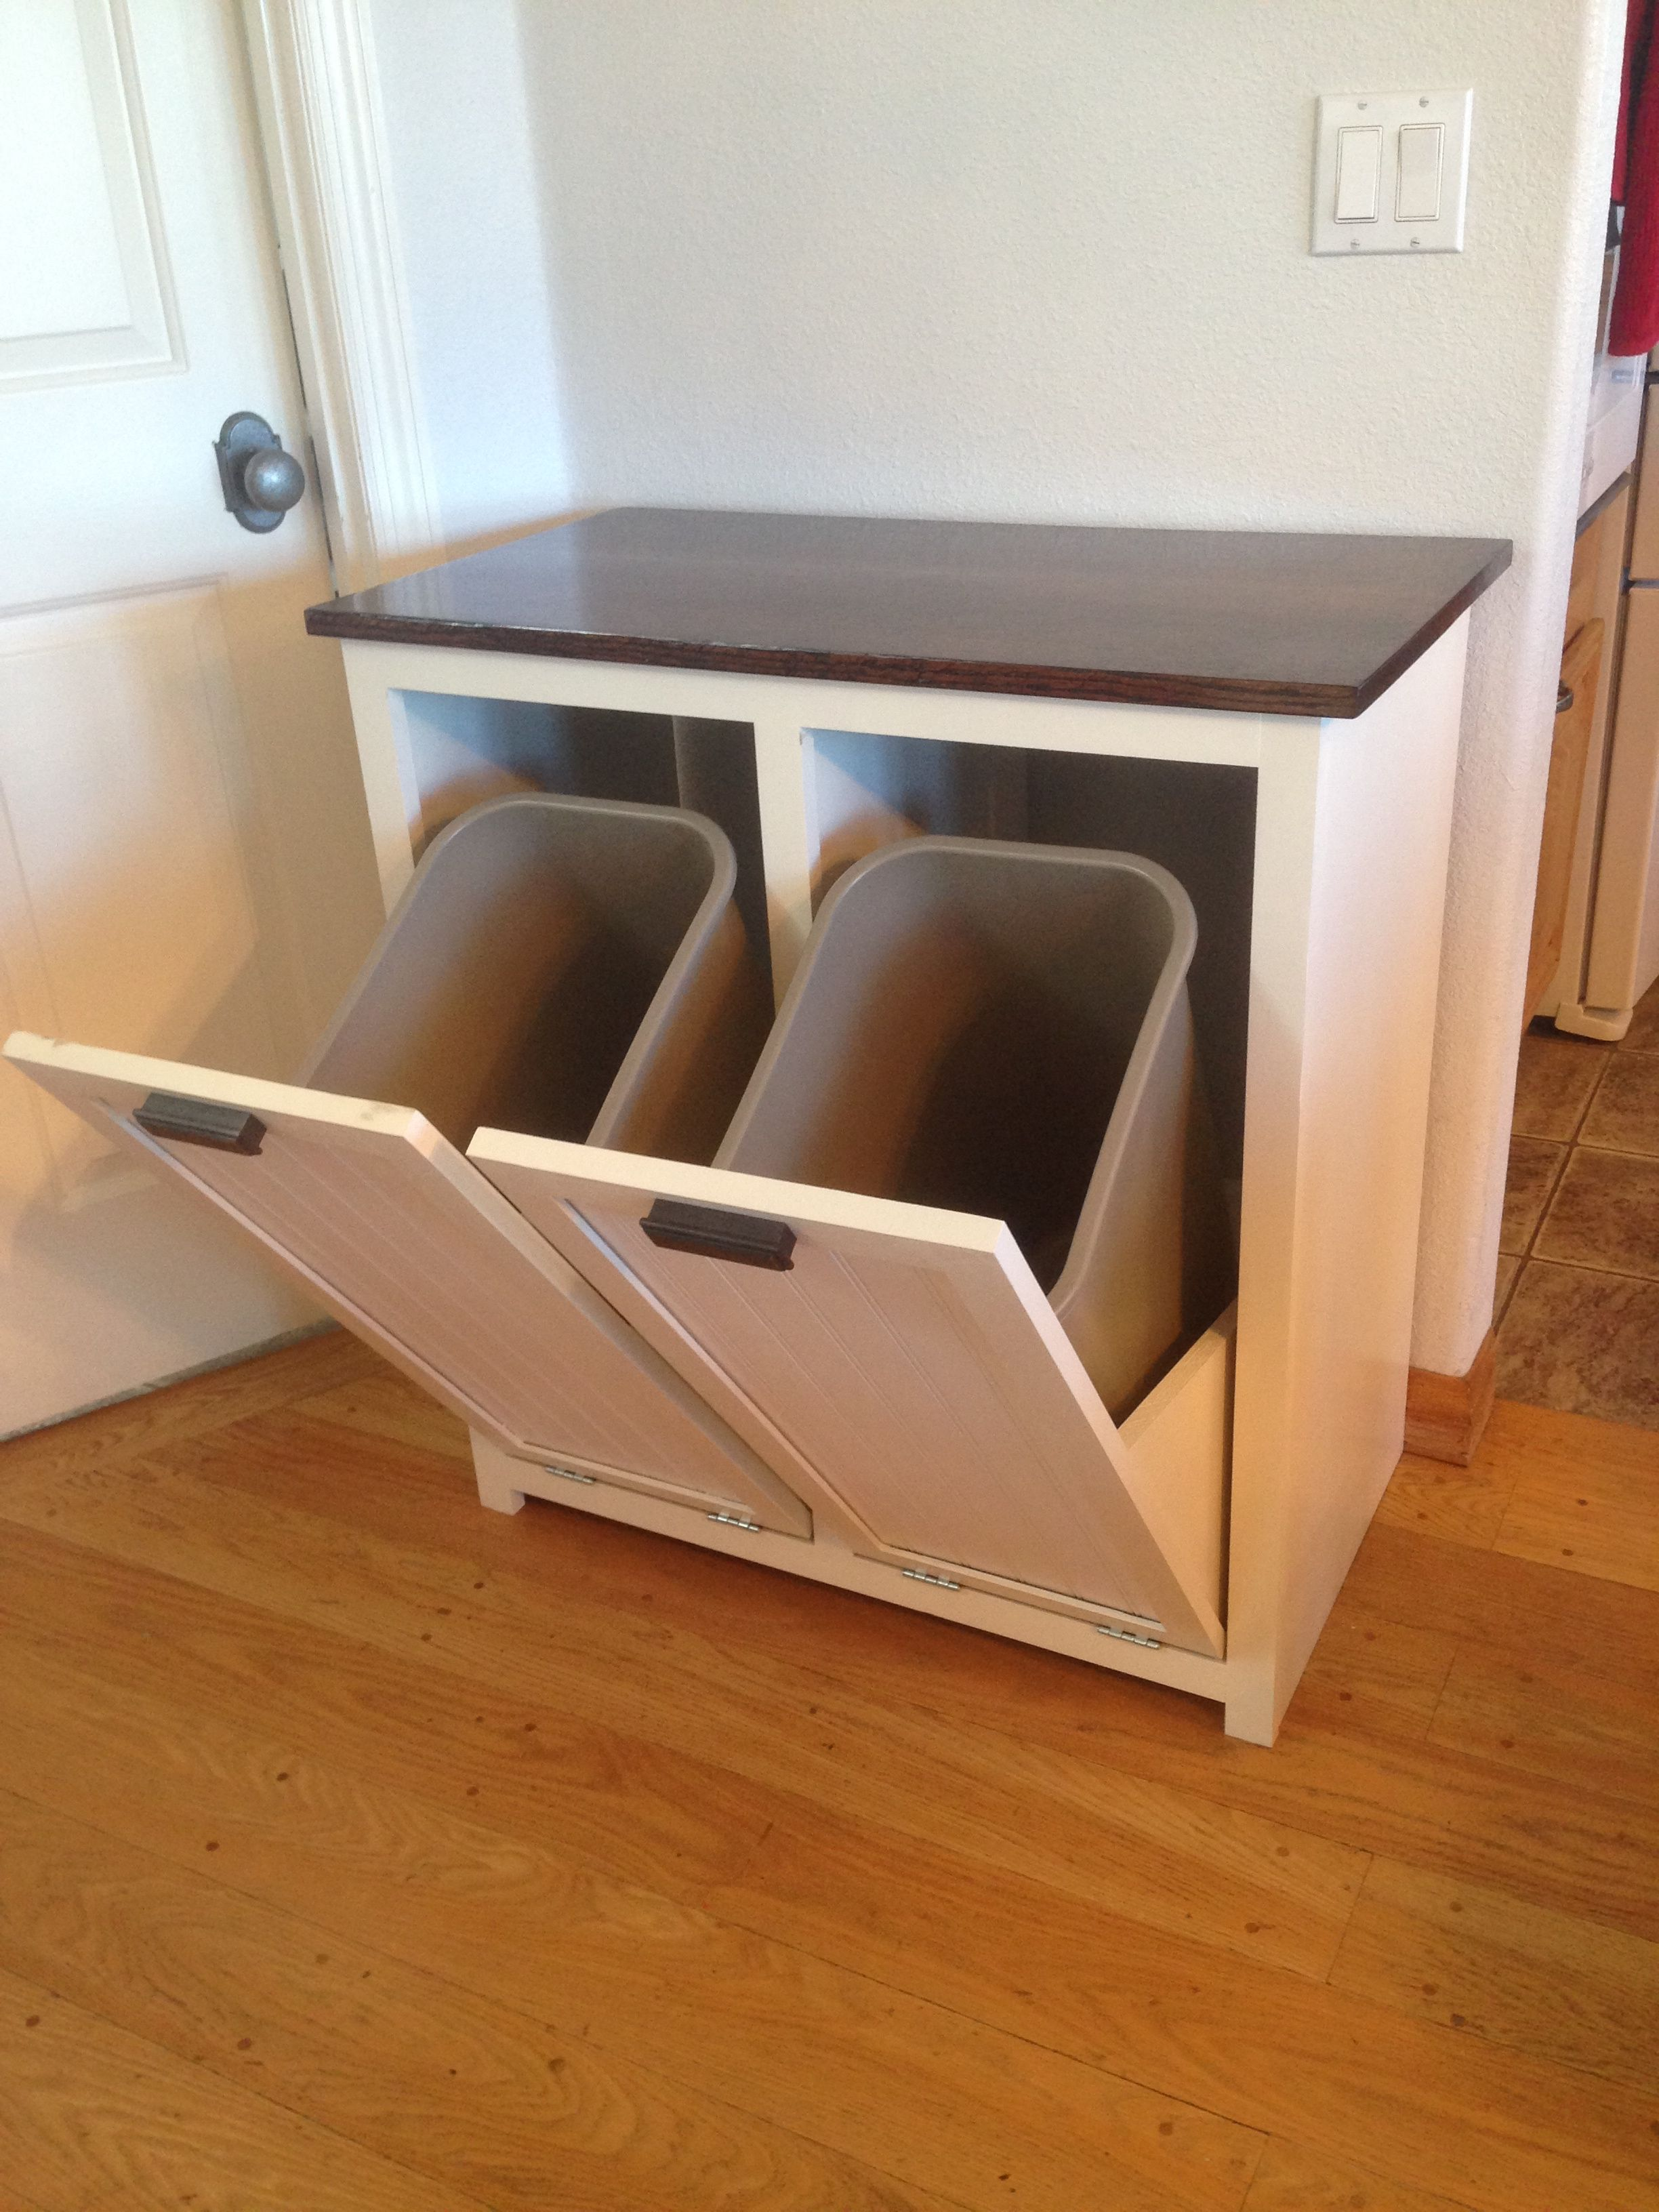 Laundry Trash Cans A Tilt Out Garbage And Recycling Cabinet Sawdust And Glue